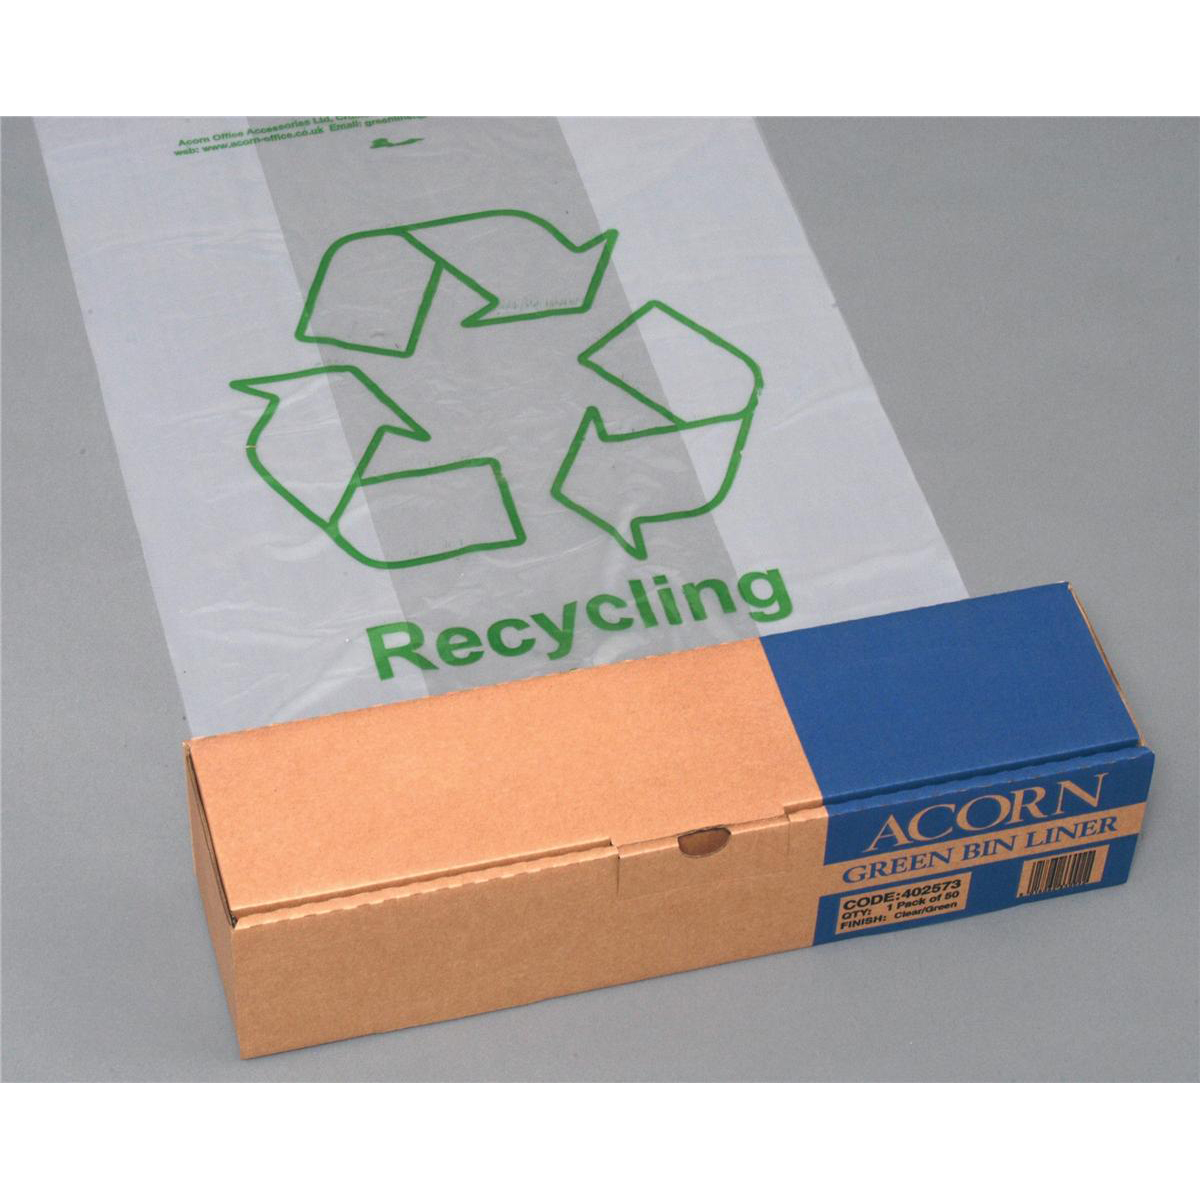 Acorn Green Bin Liners Capacity 60 Litres 630x860mm Clear and Printed Ref 402573 Pack 50